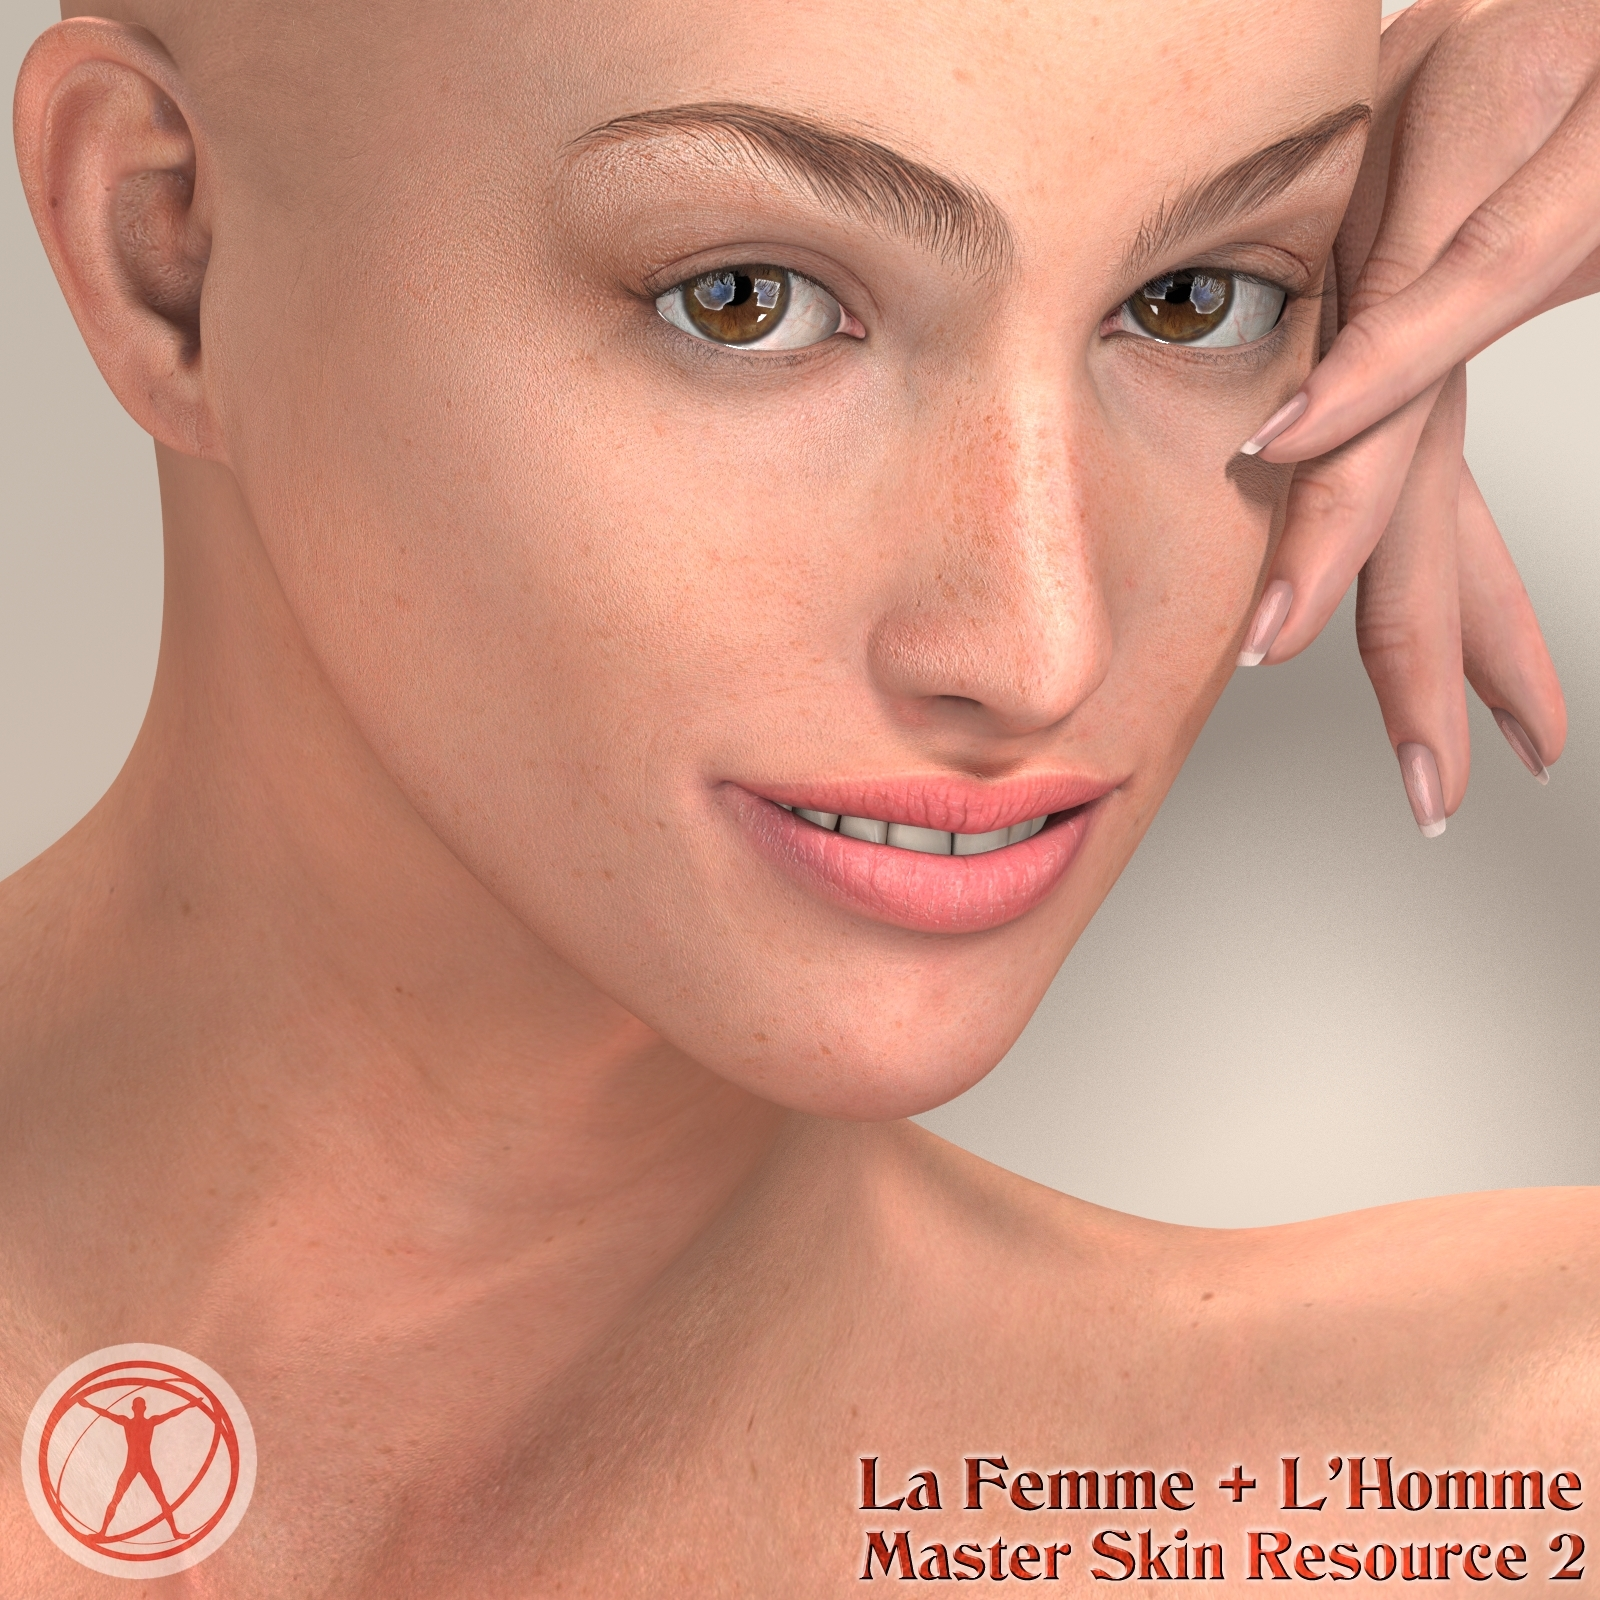 La Femme + L'Homme - Master Skin Resource 2 by 3Dream